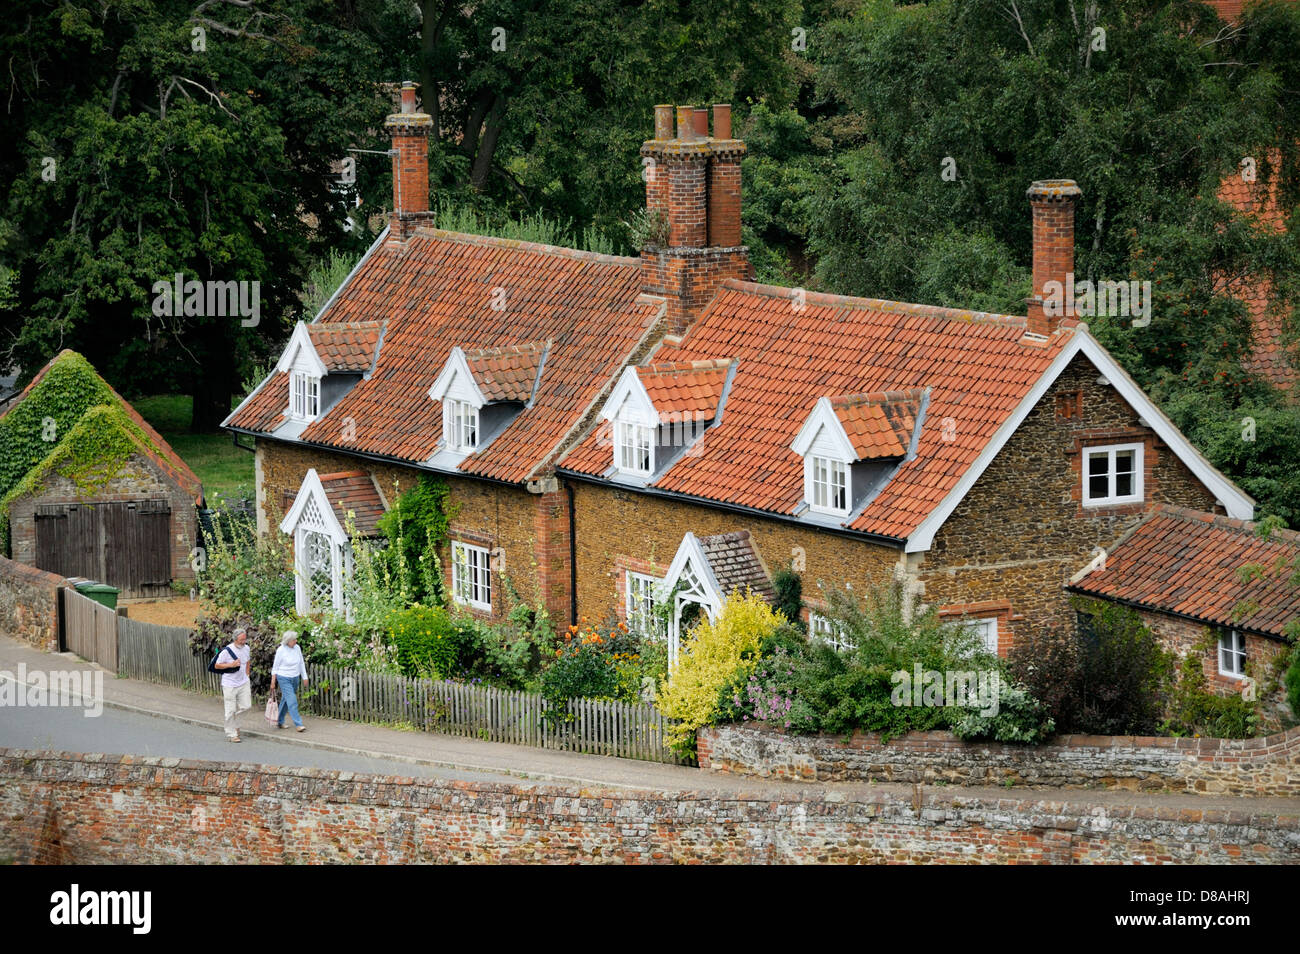 Red brick cottages with dormer windows and gardens in village of Castle Rising, Norfolk, England - Stock Image